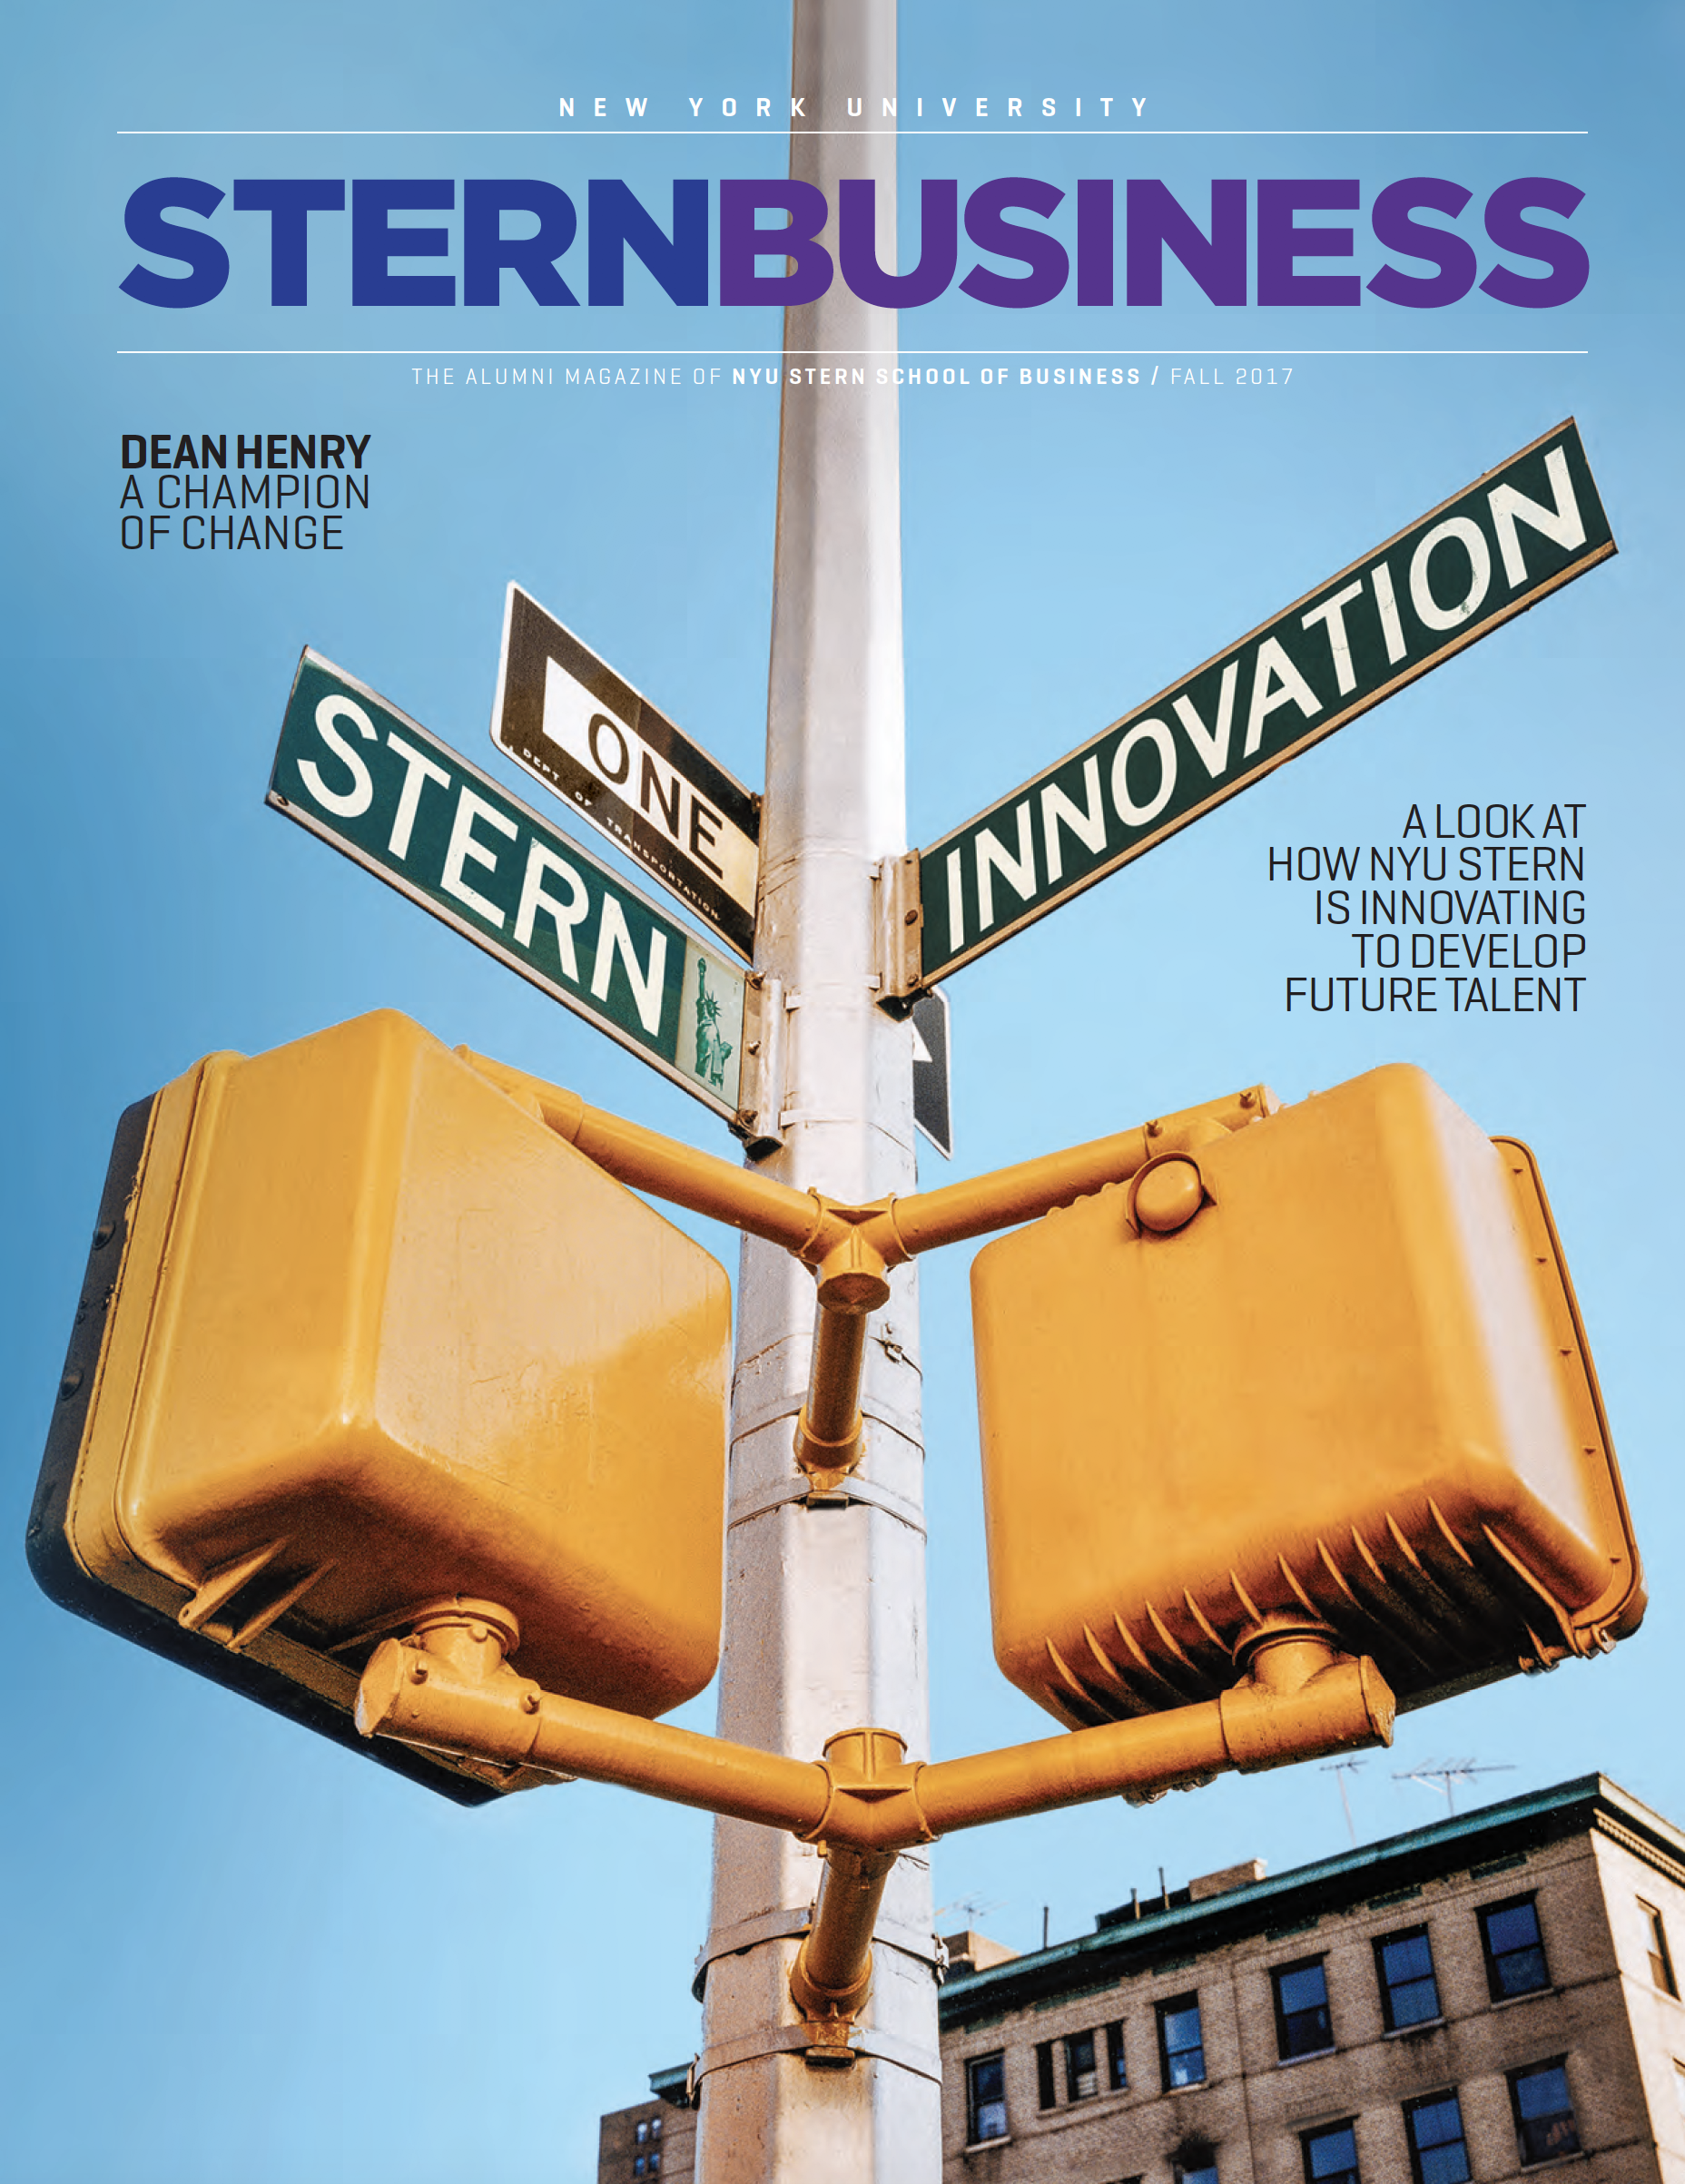 SternBusiness Magazine Fall 2017